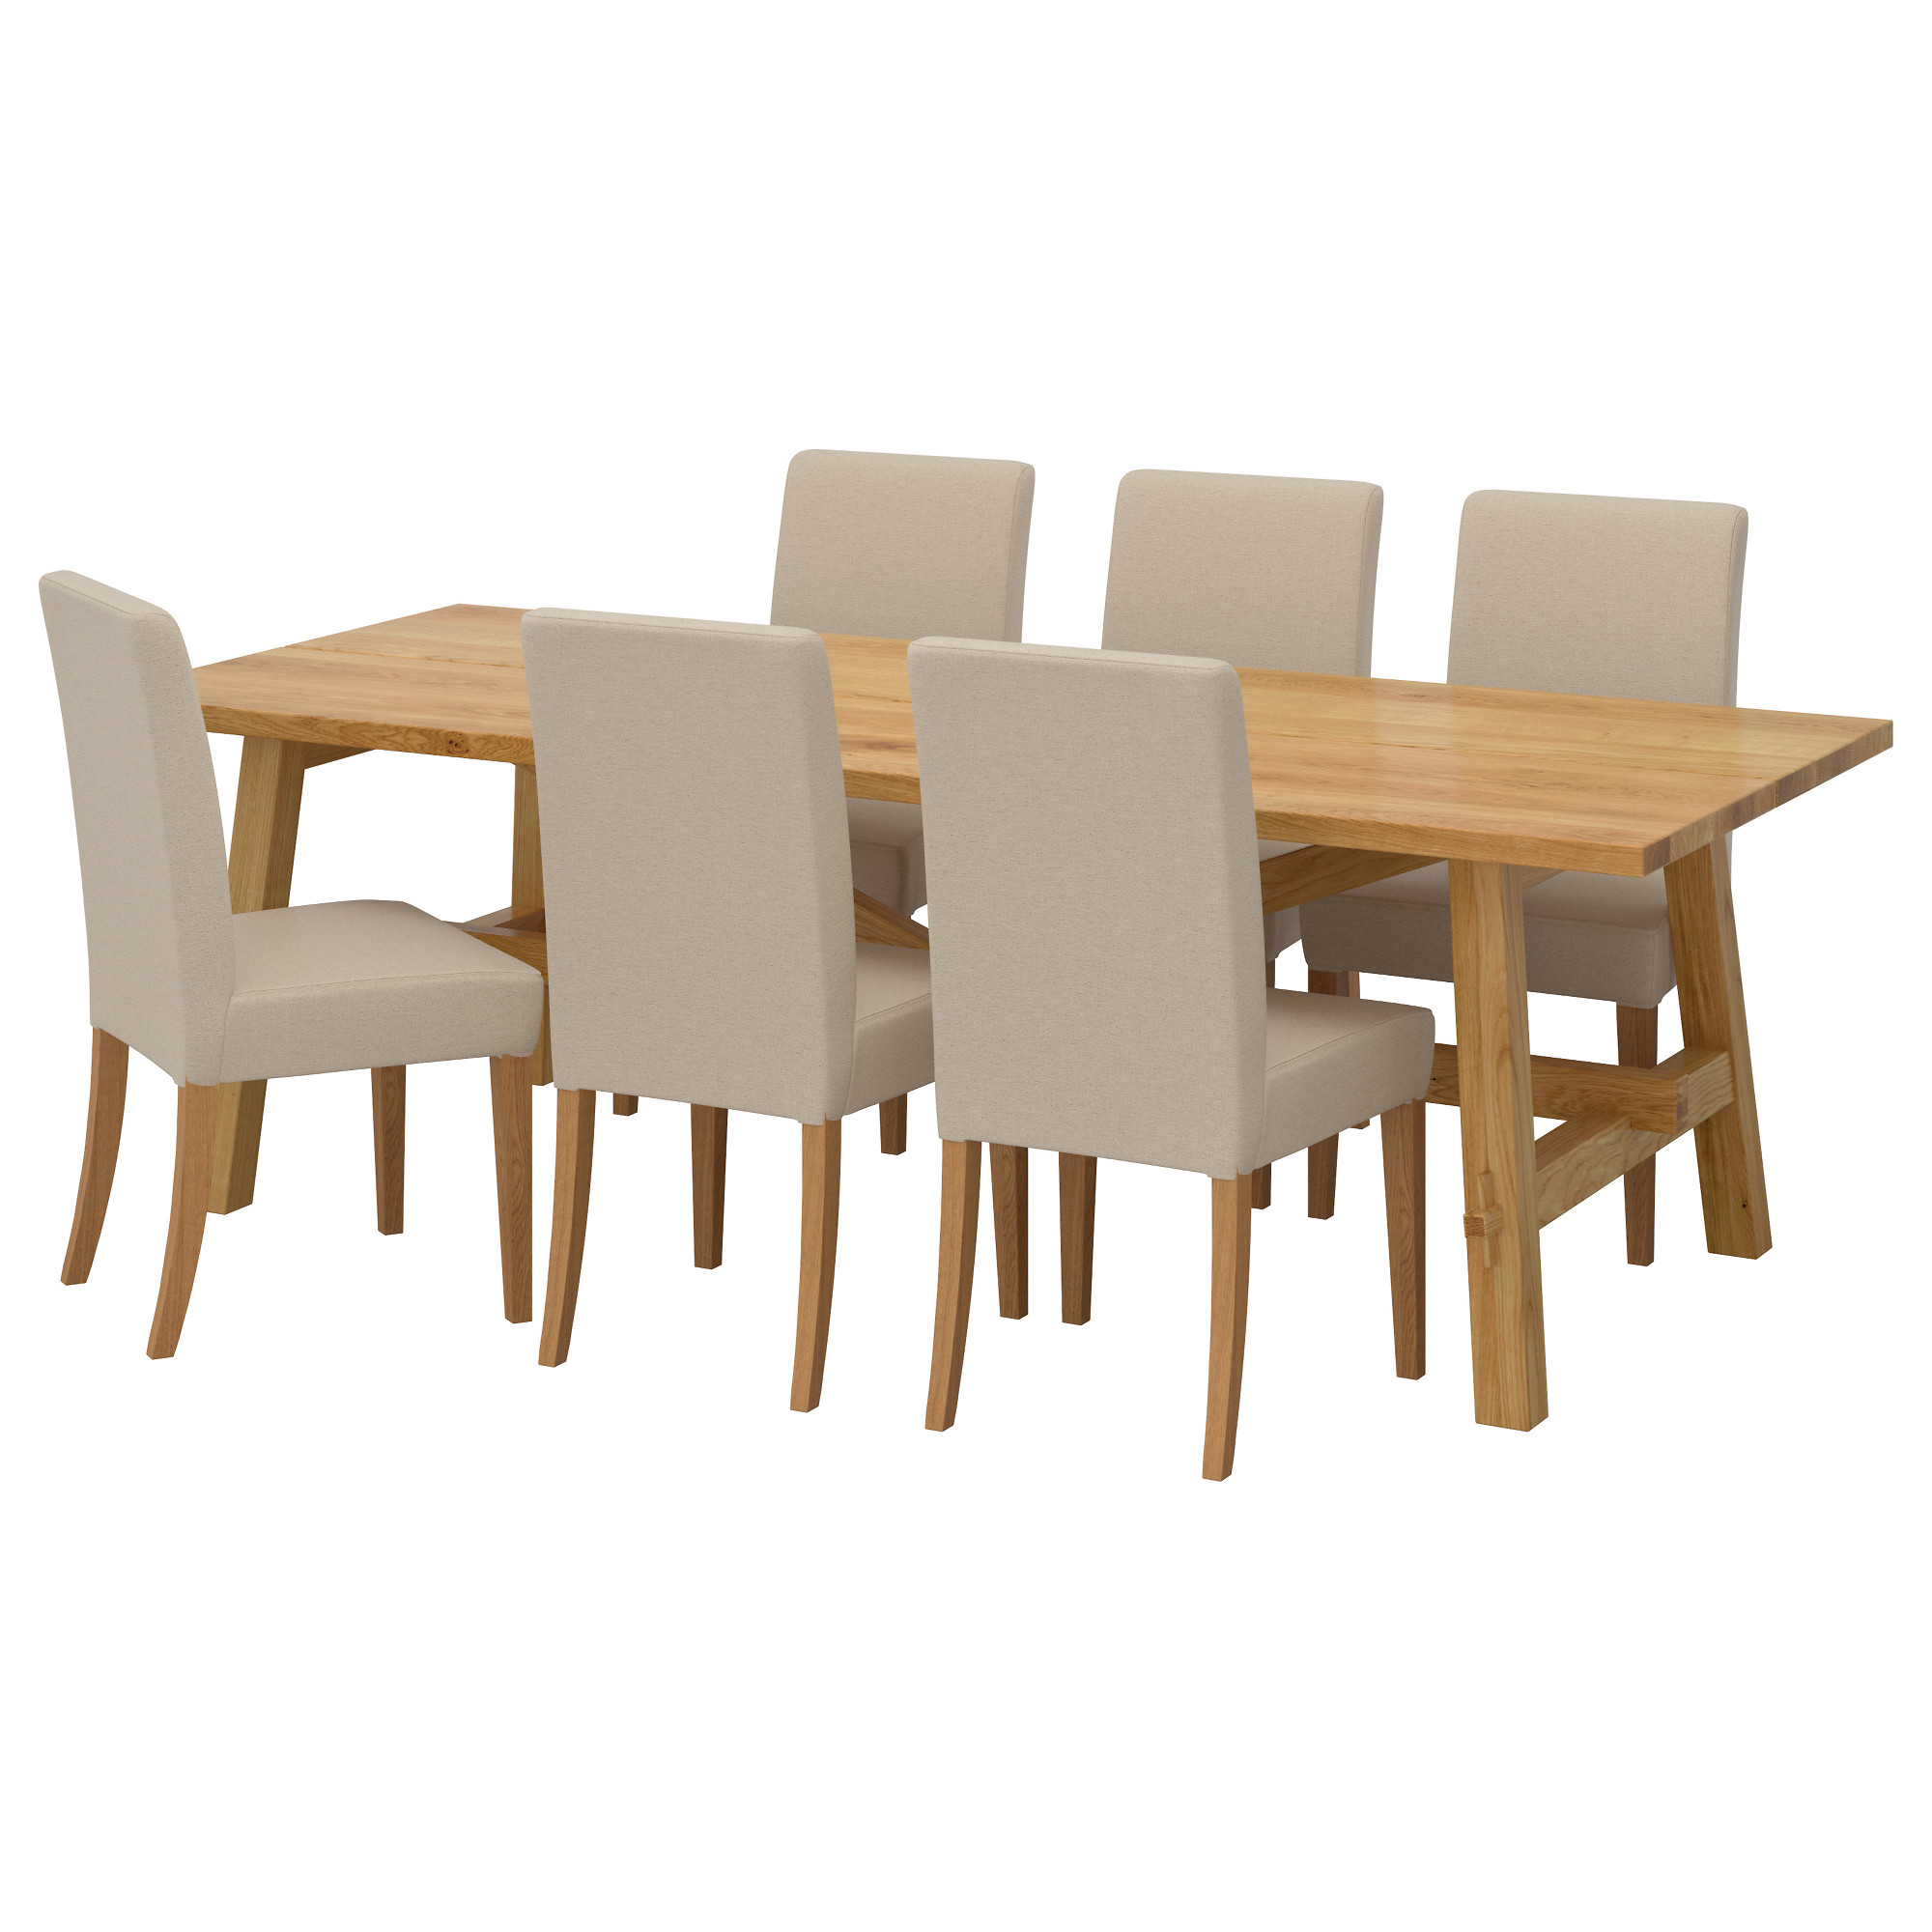 Lovely MÖCKELBY / HENRIKSDAL Table And 6 Chairs, Oak, Linneryd Natural Length: 92 1 Part 27